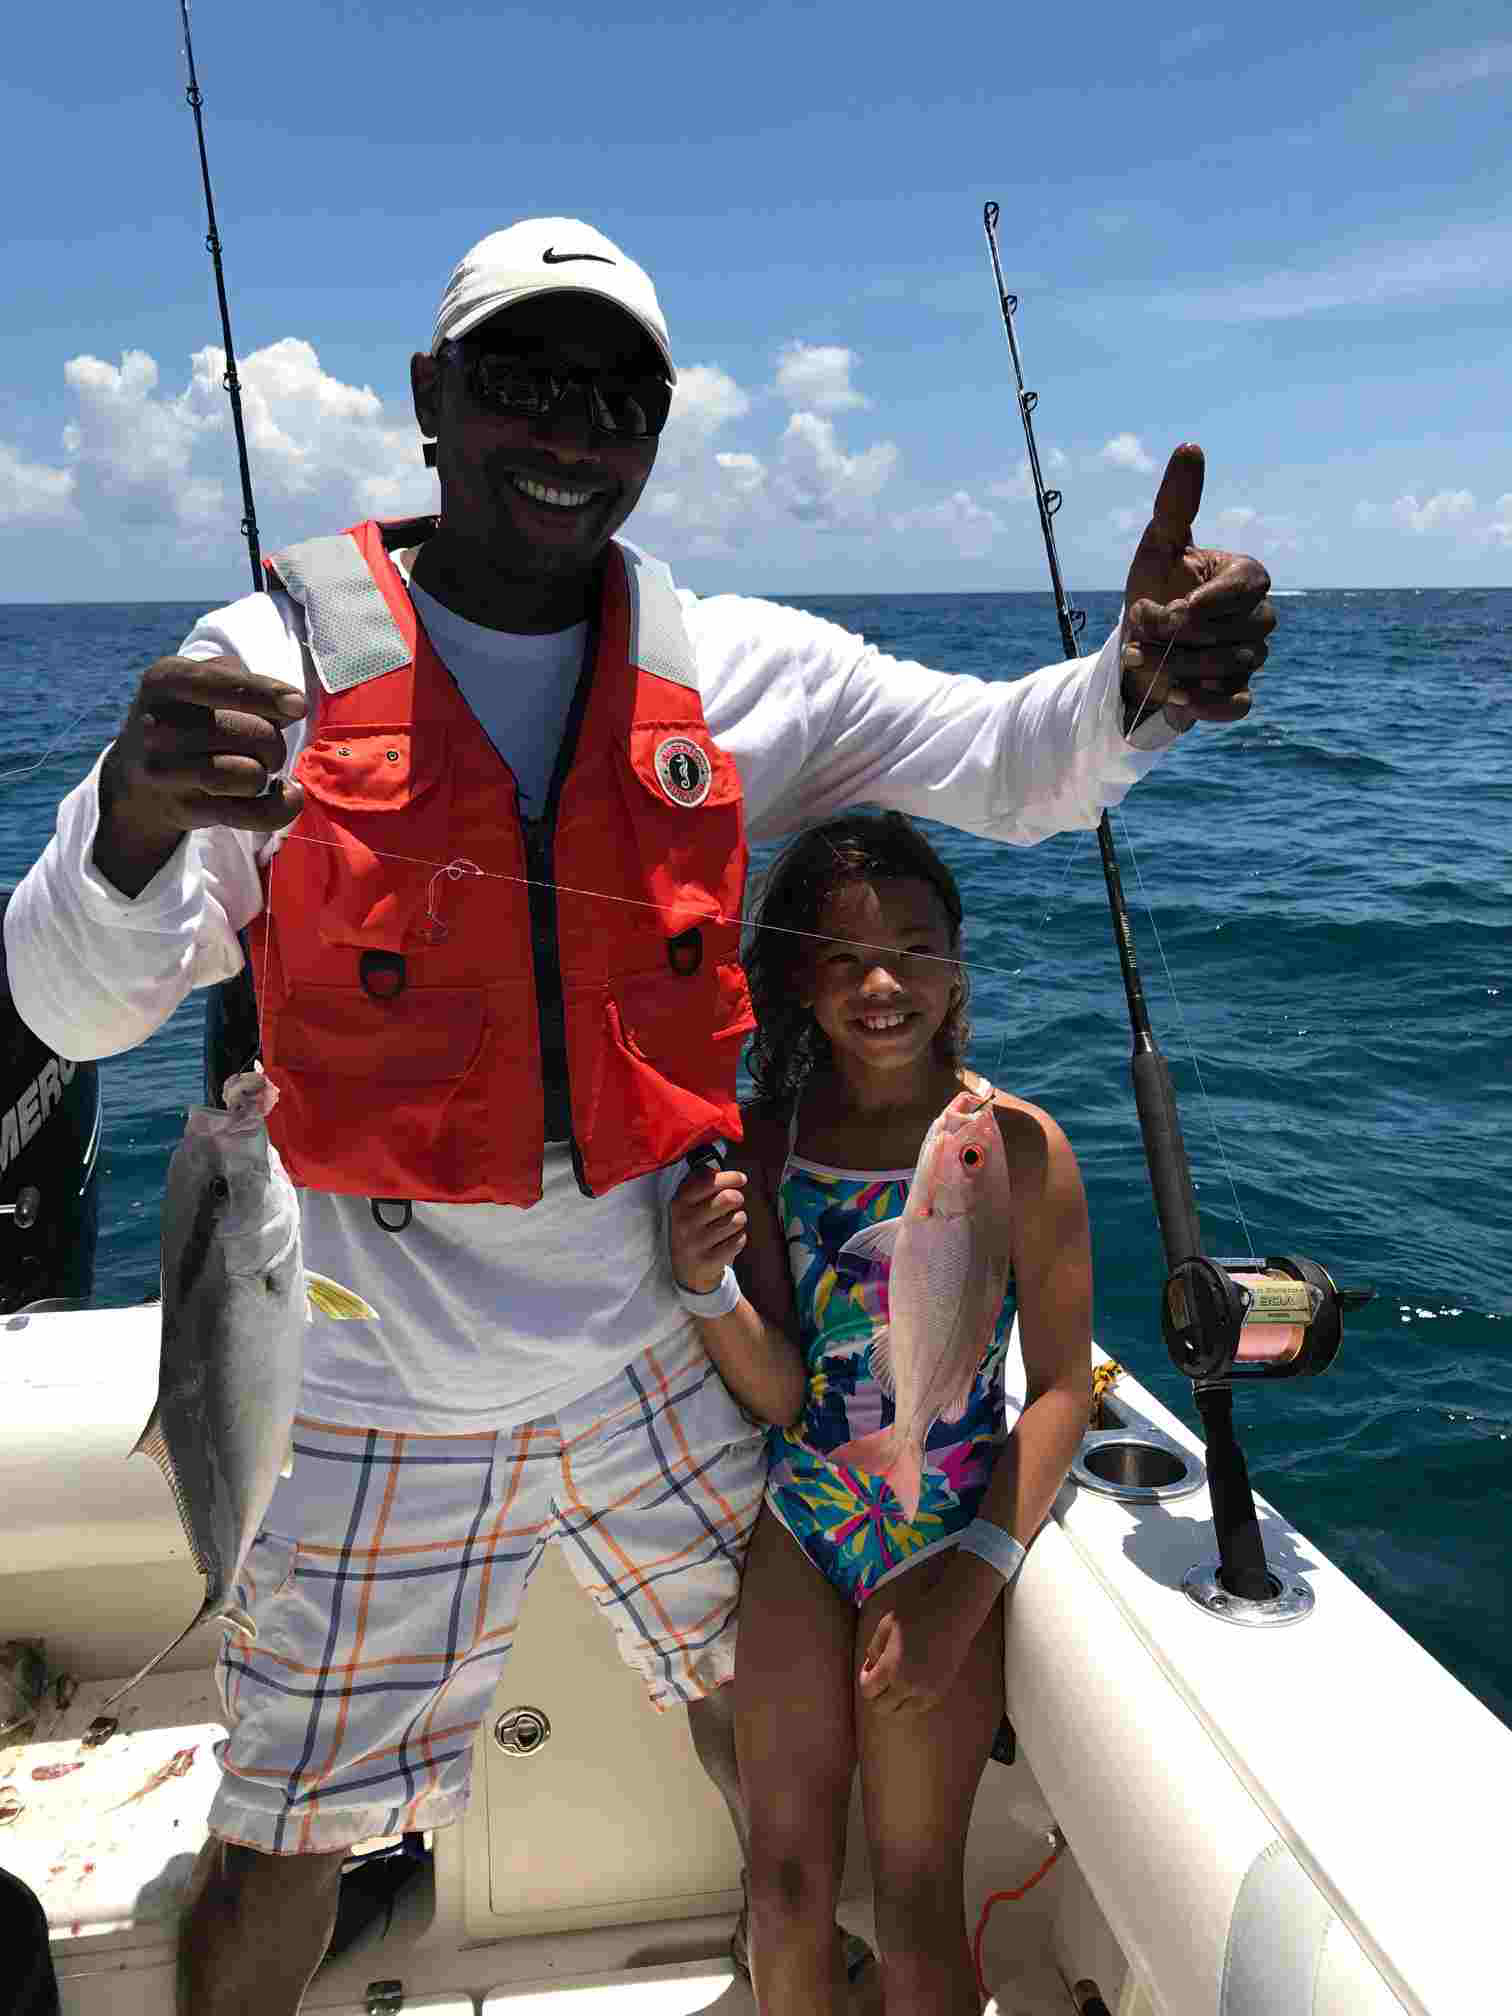 David and Marley with a doubleheader - strawberry snapper and blue runner